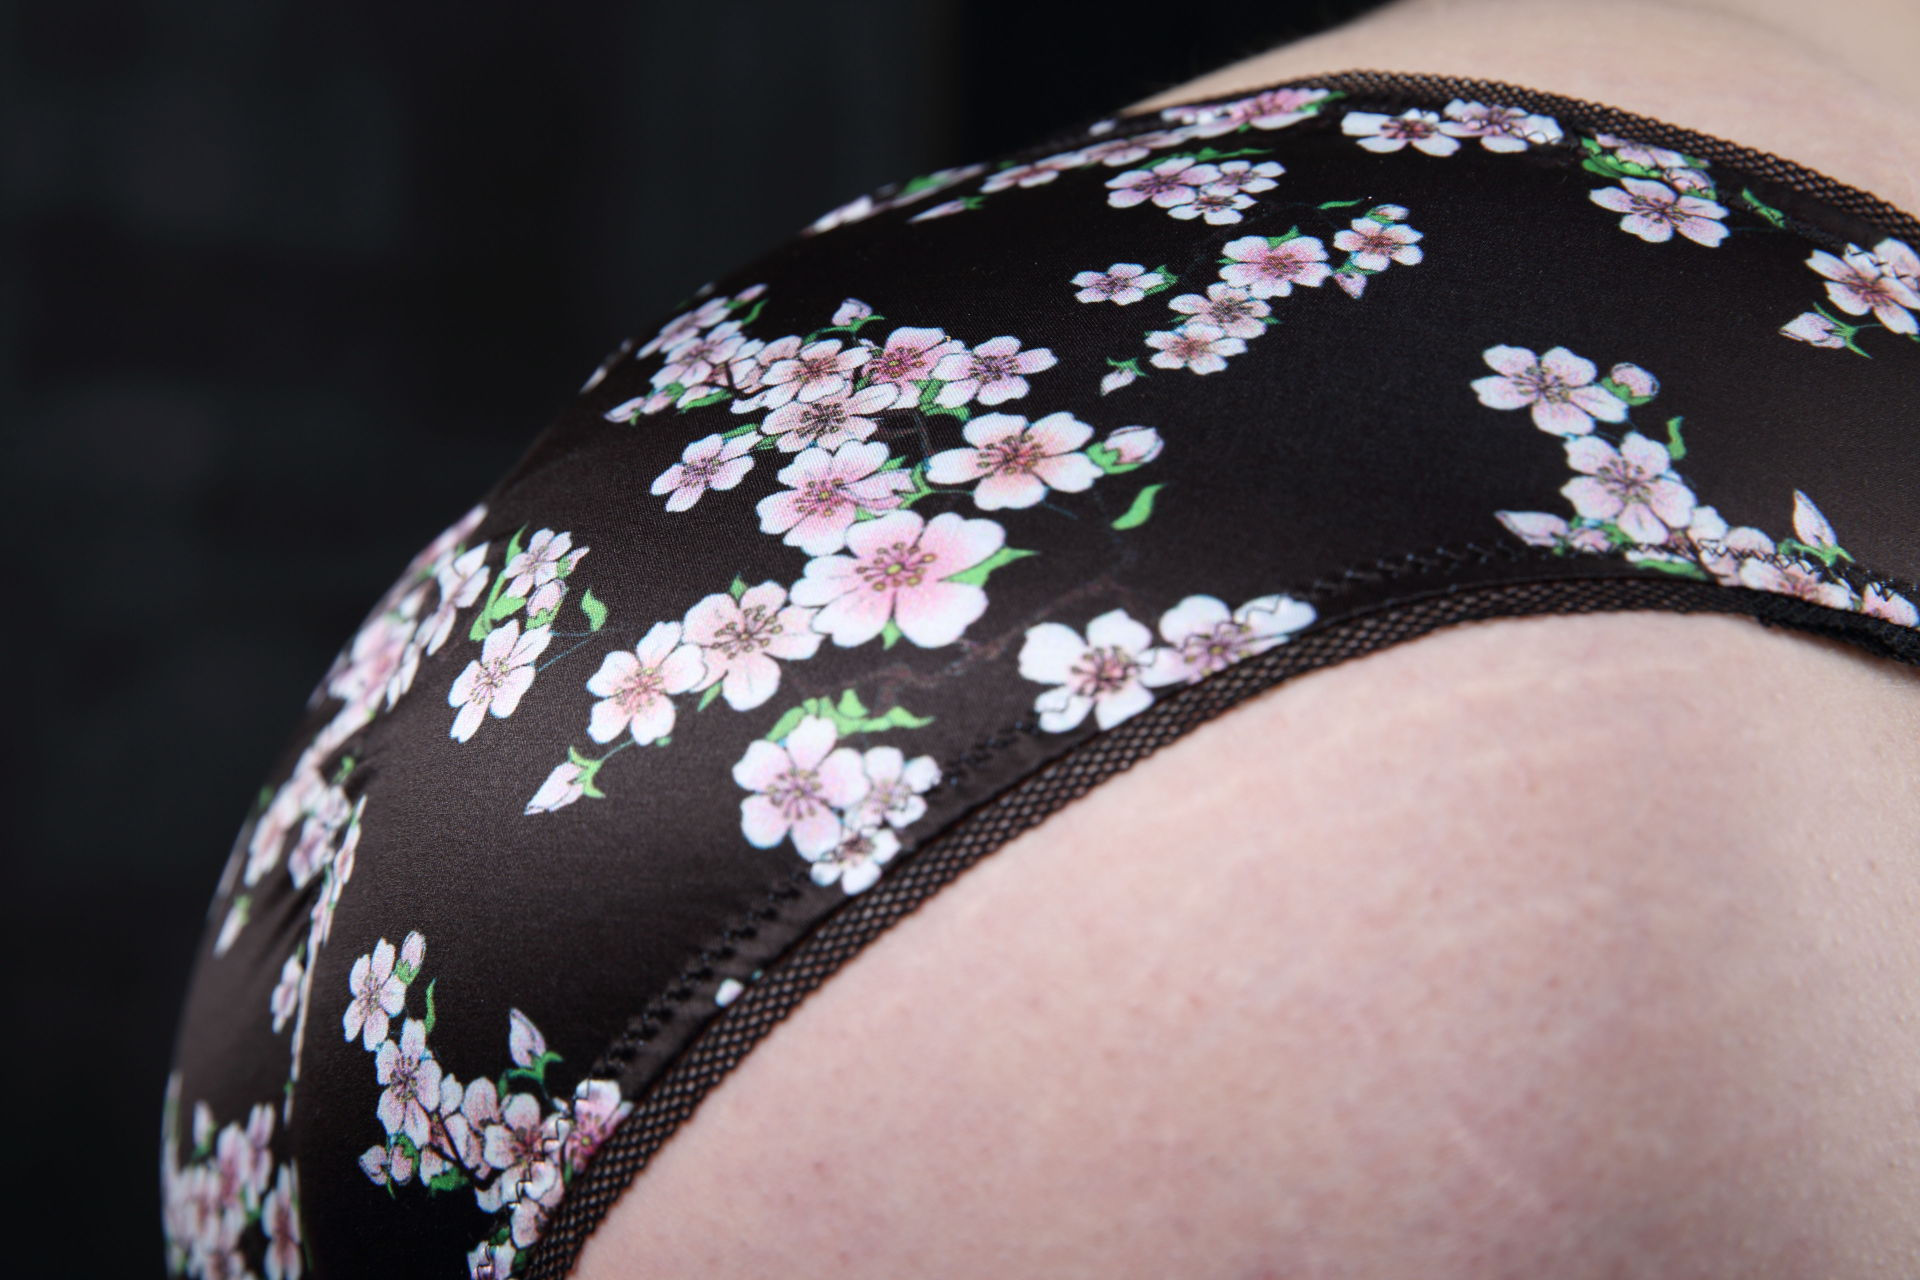 guerrilla-geisha-lingerie-collection-teal-blue-orchid-girl-open-back-knickers-London